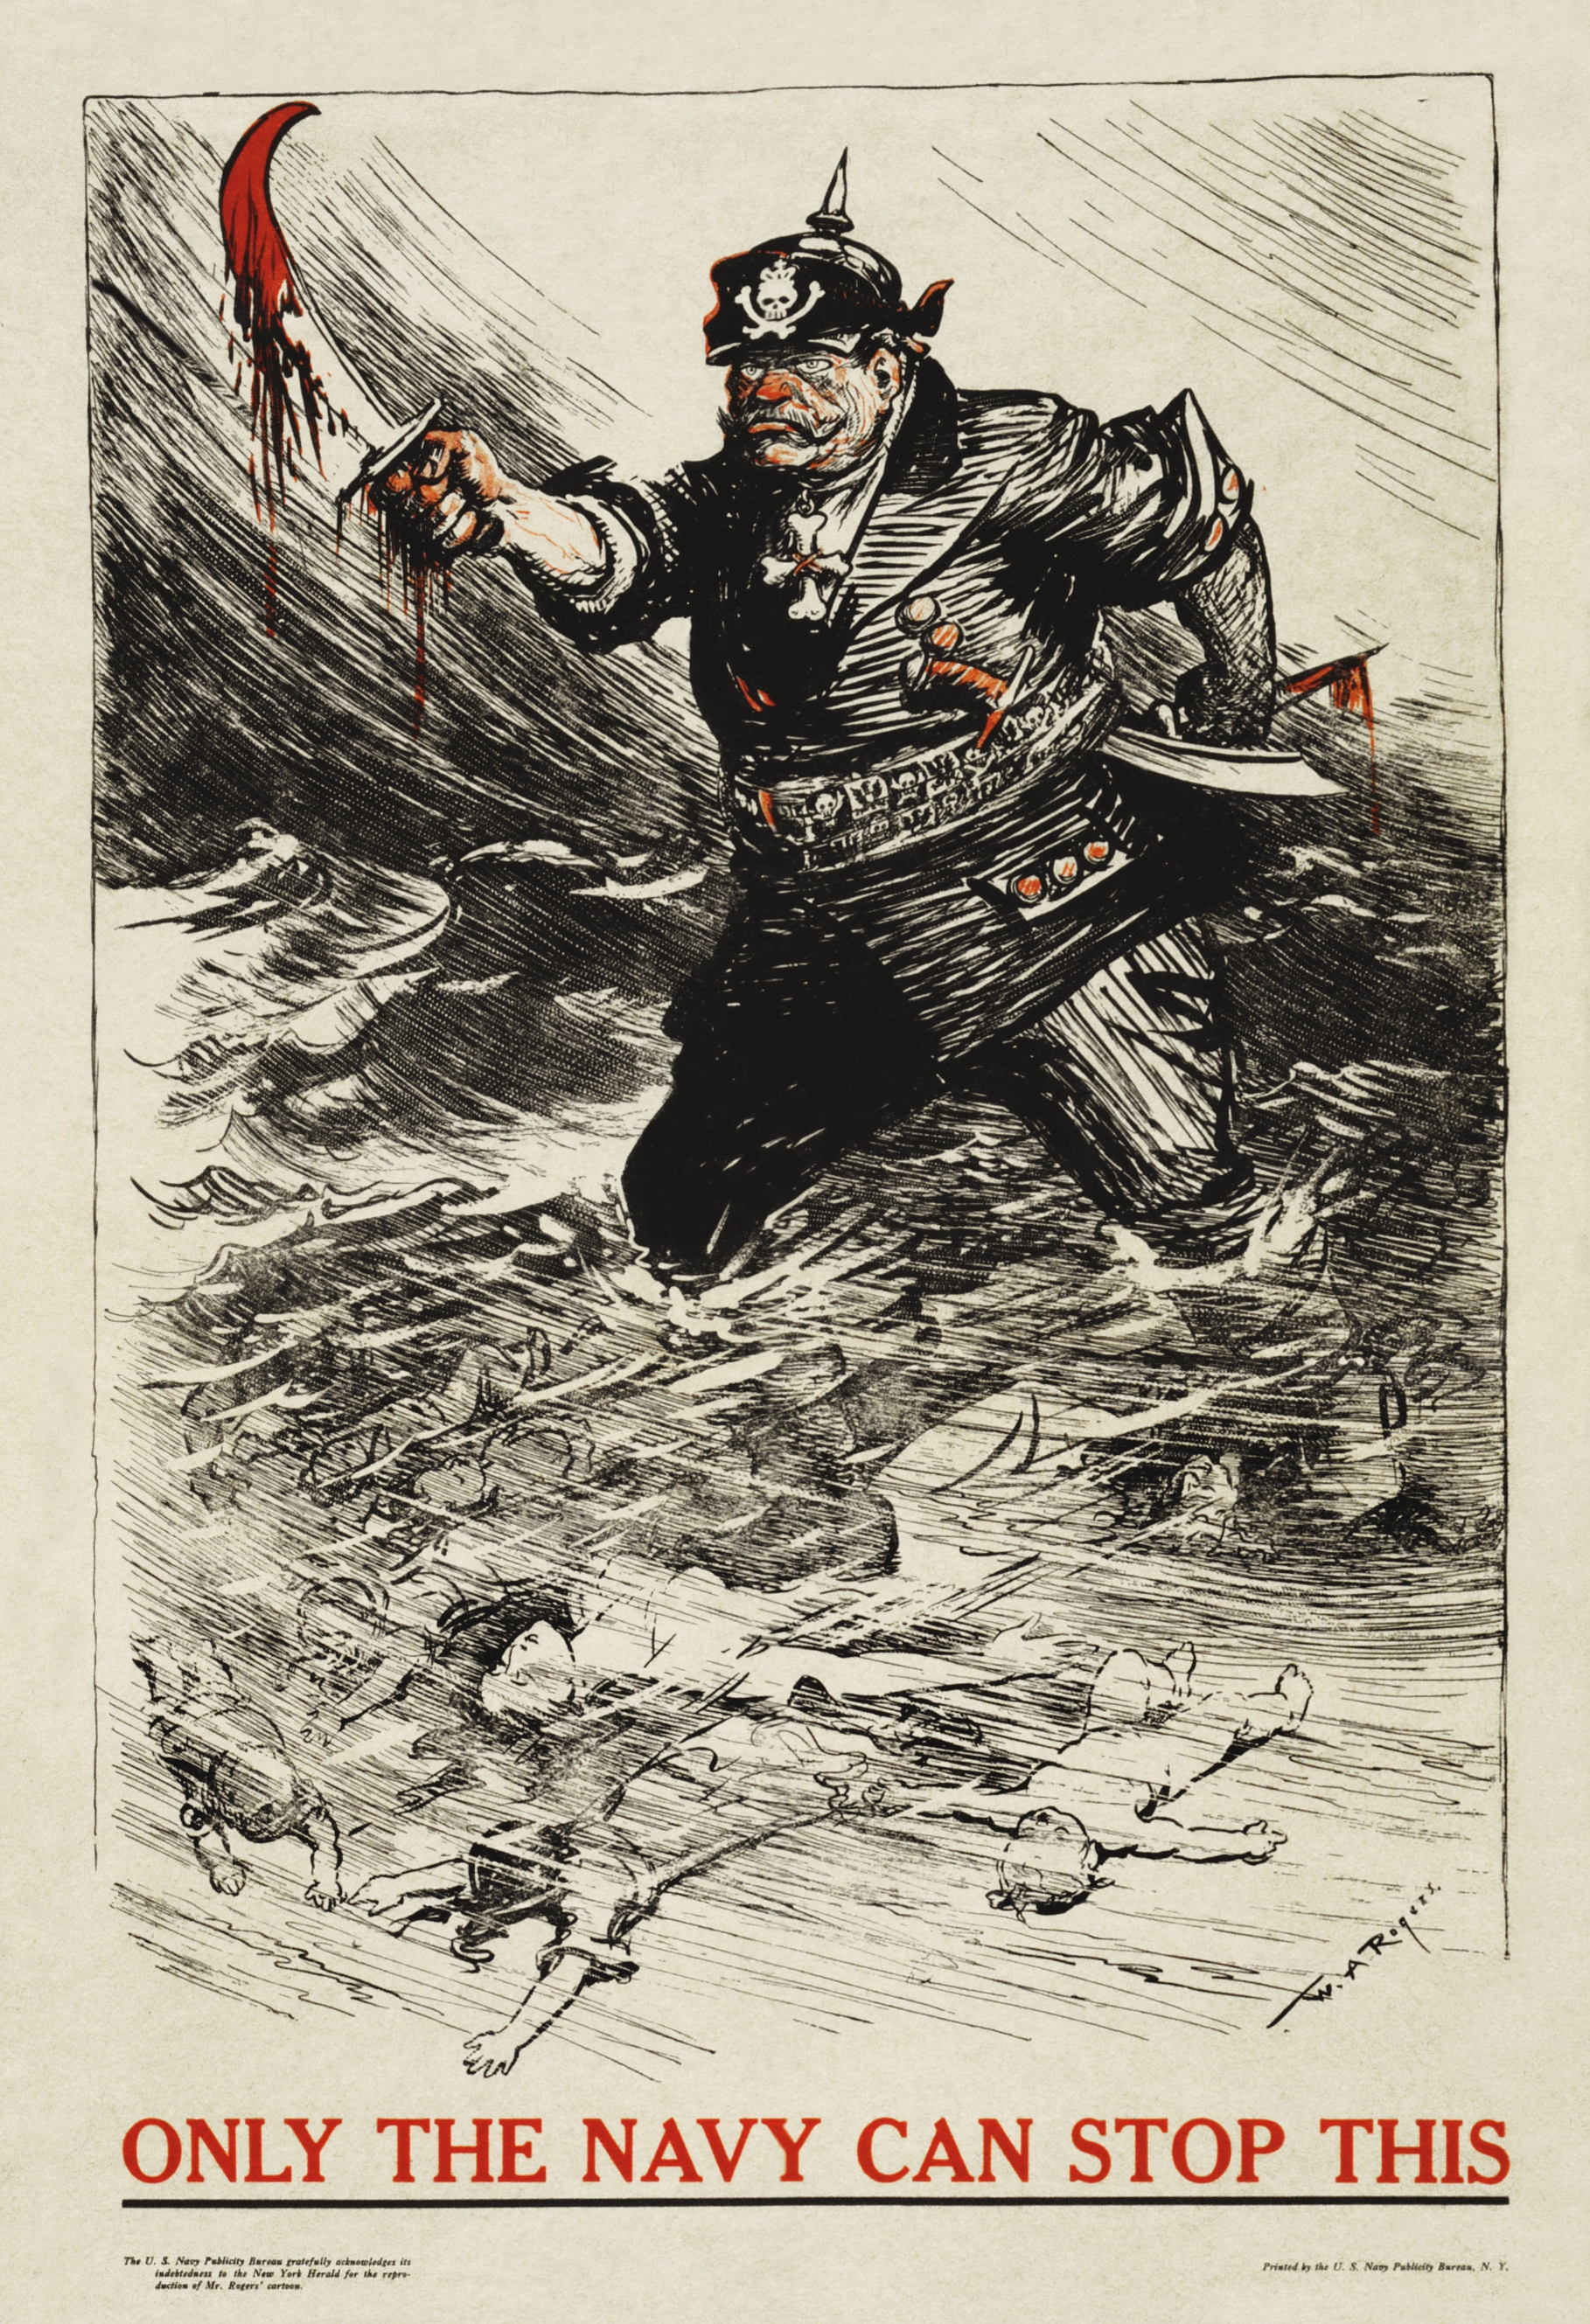 A World War I U.S. Navy Recruitment poster, using a New York Herald cartoon by W.A. Rogers. It shows an anthropomorphized Germany wading through a sea of dead bodies, with the slogan